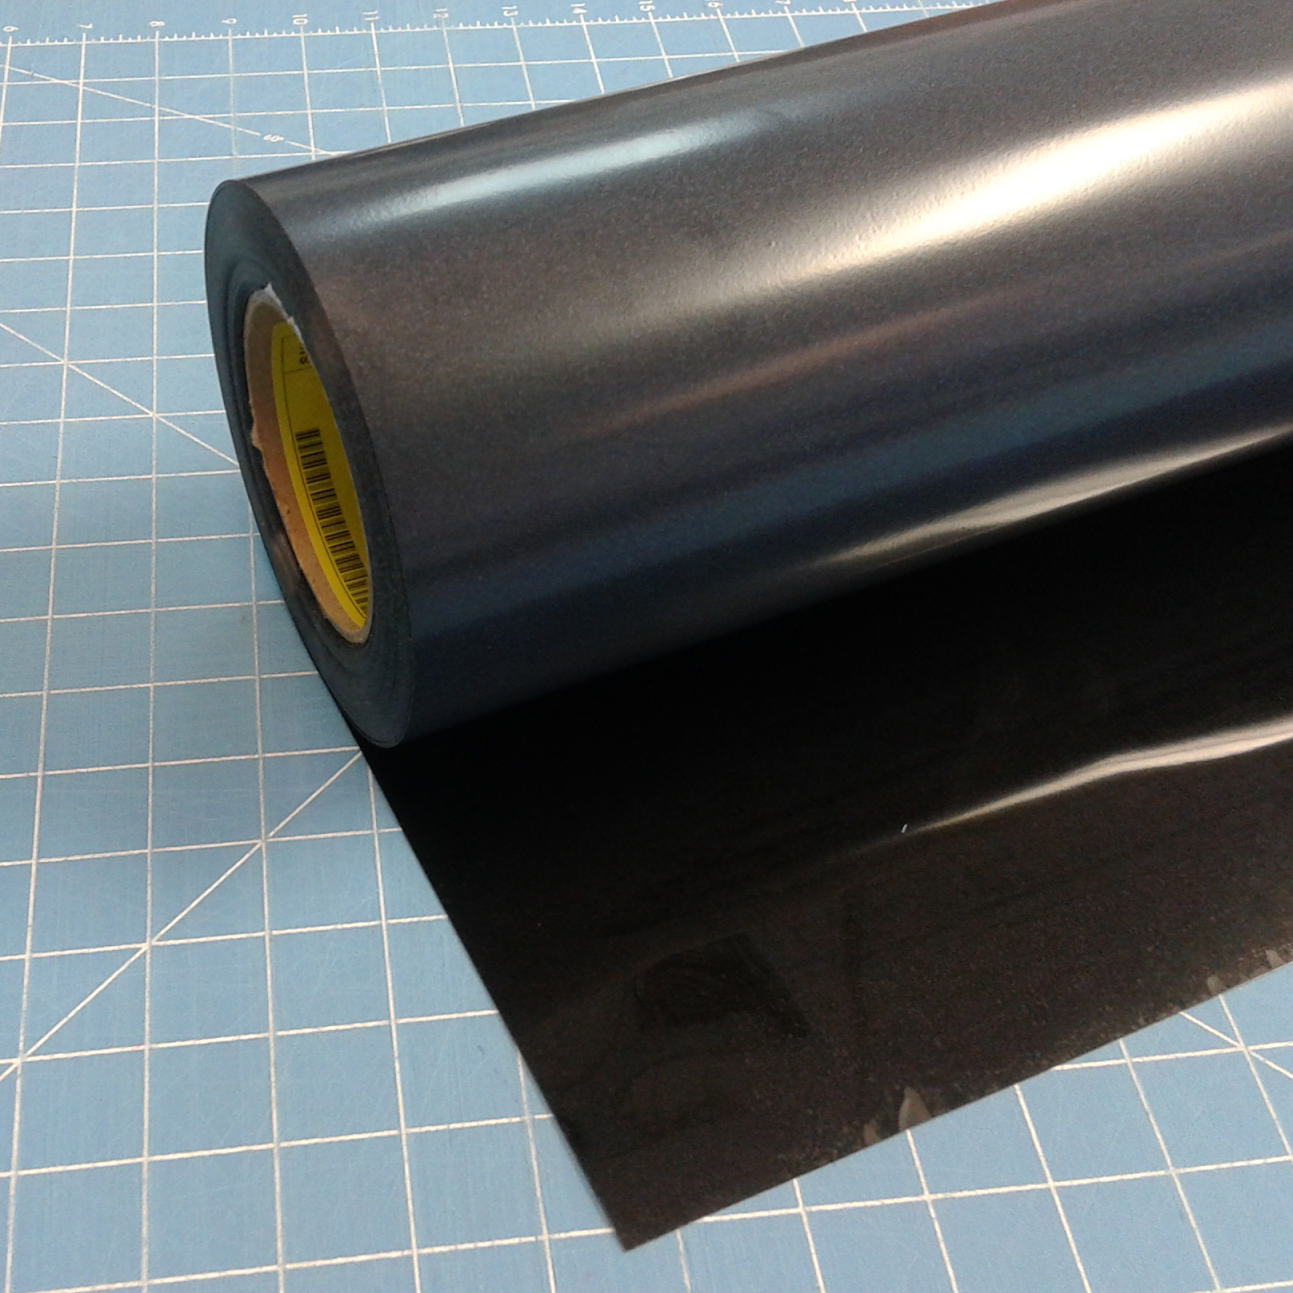 "Siser Easyweed Stretch Black 15"" x 10' Iron on Heat Transfer Vinyl Roll * Coaches World"